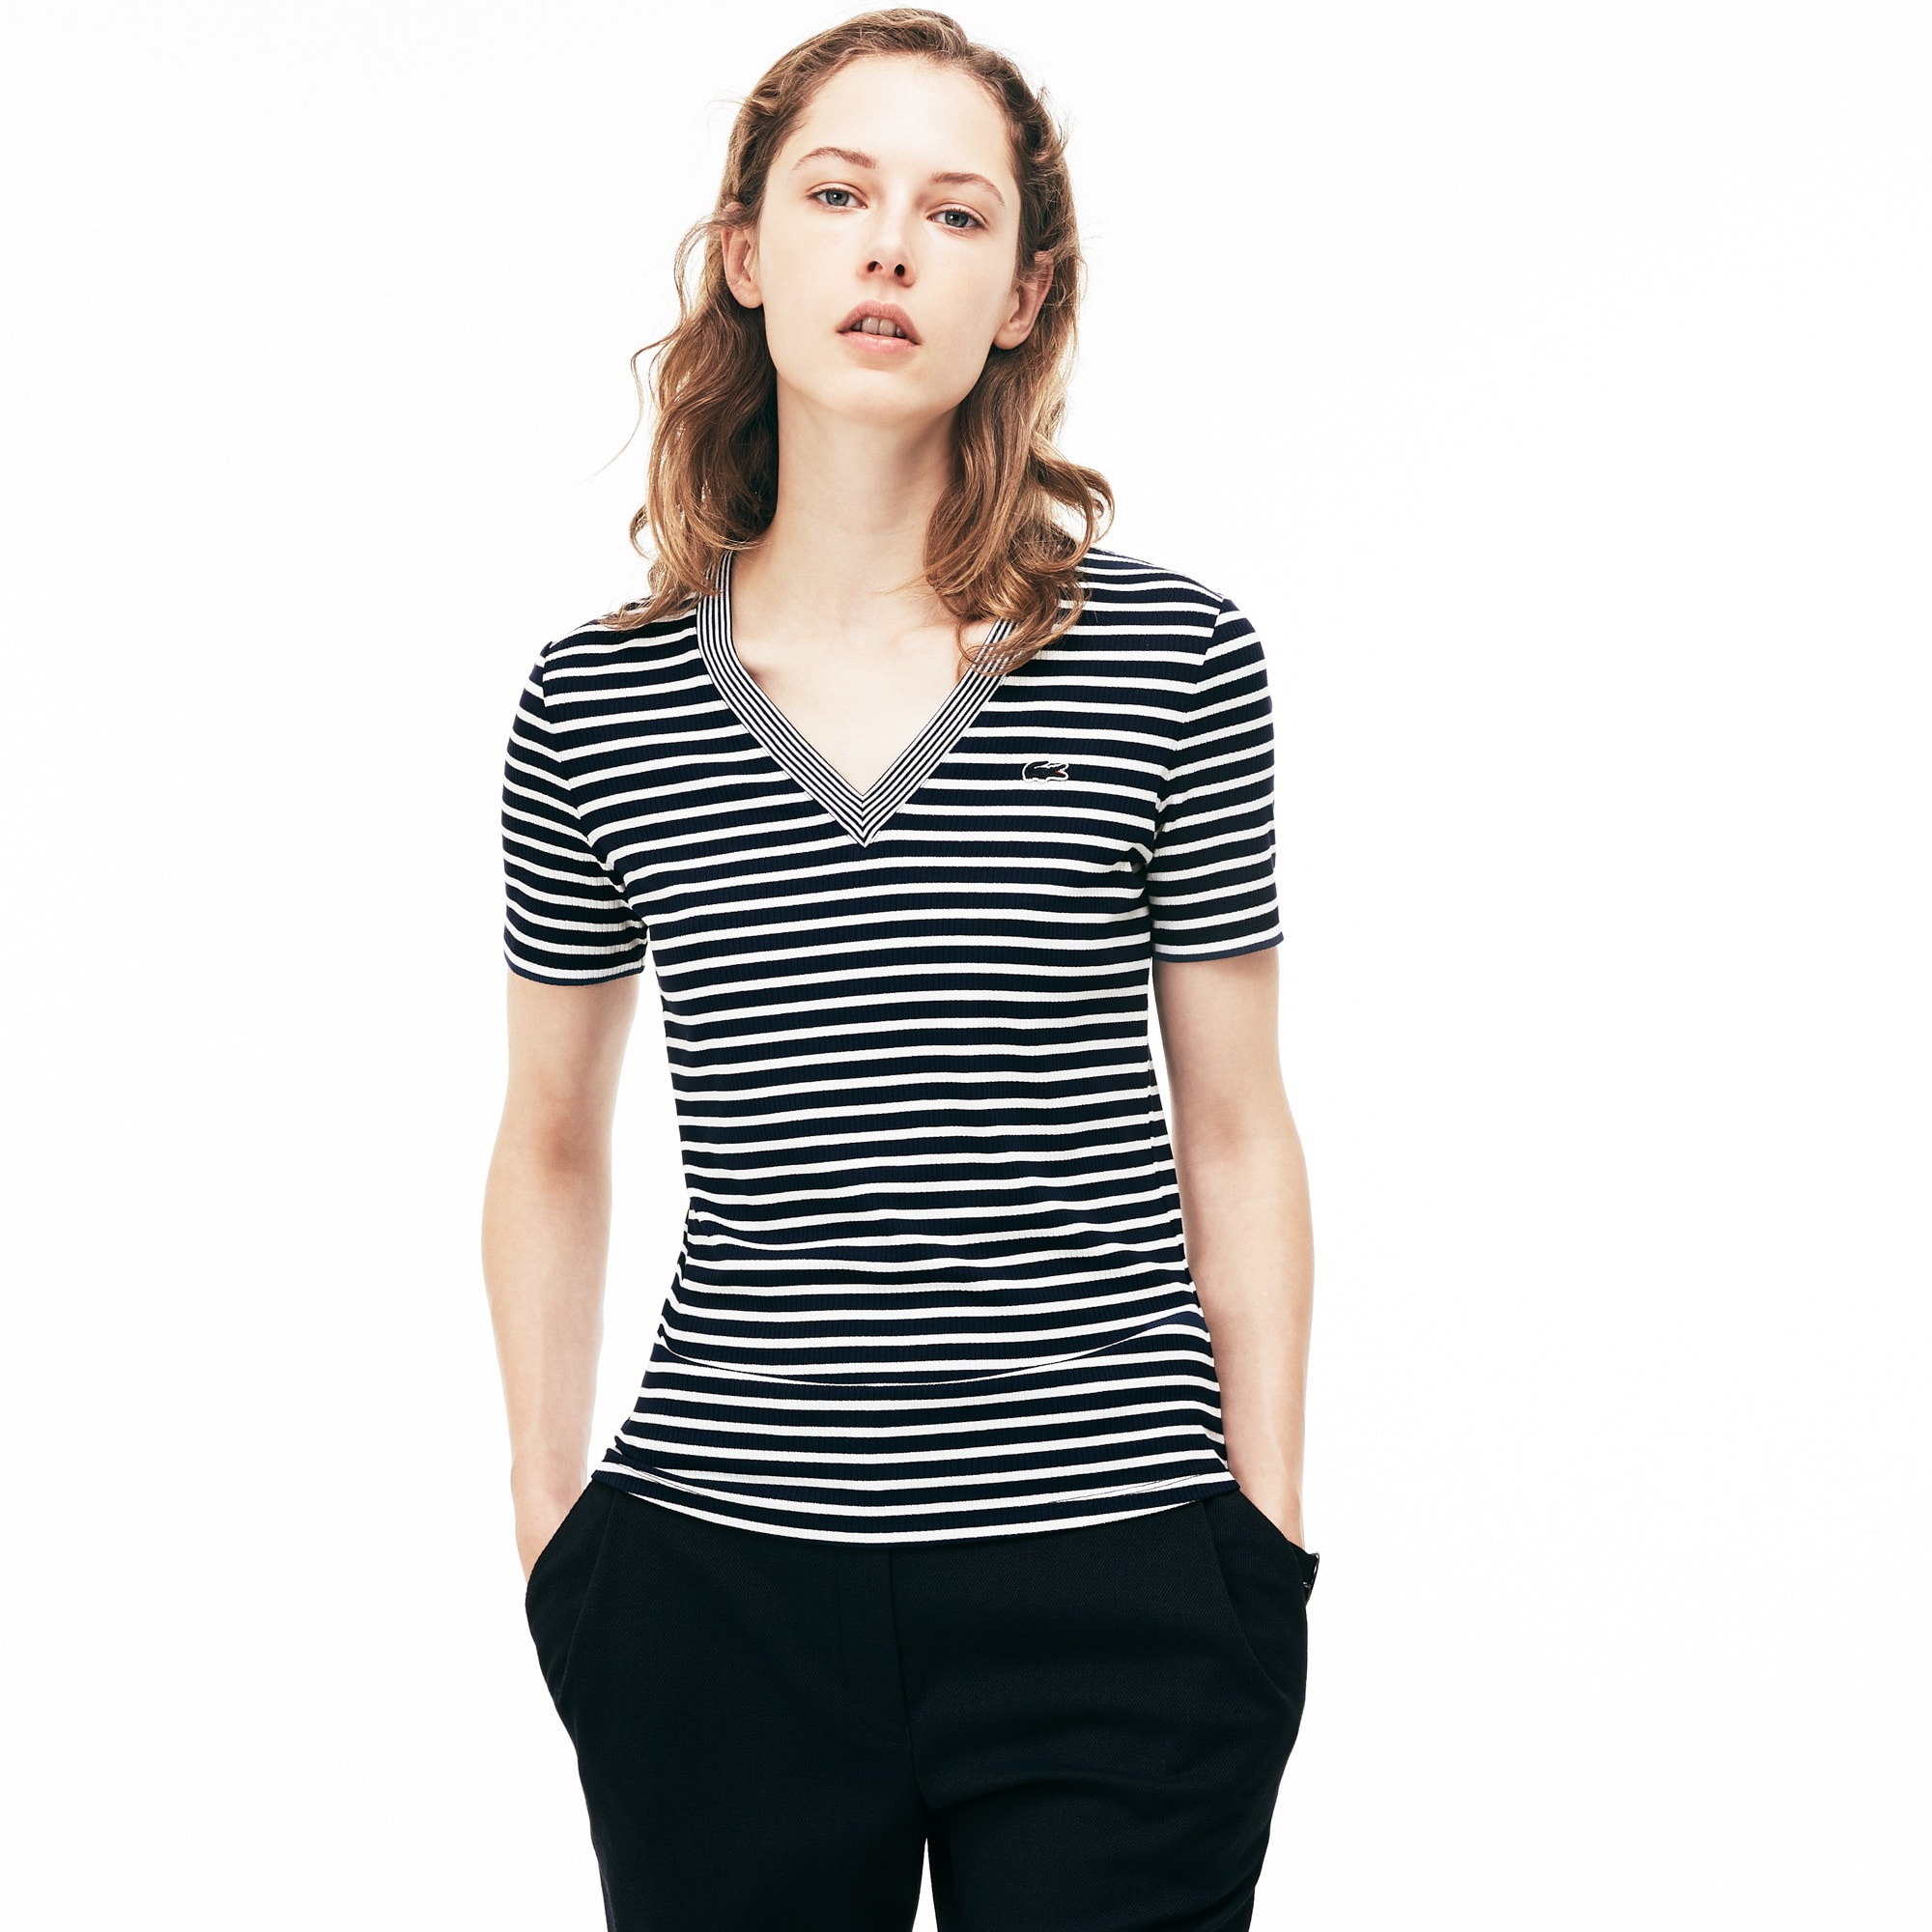 Women's V-neck Striped Stretch Cotton T-shirt